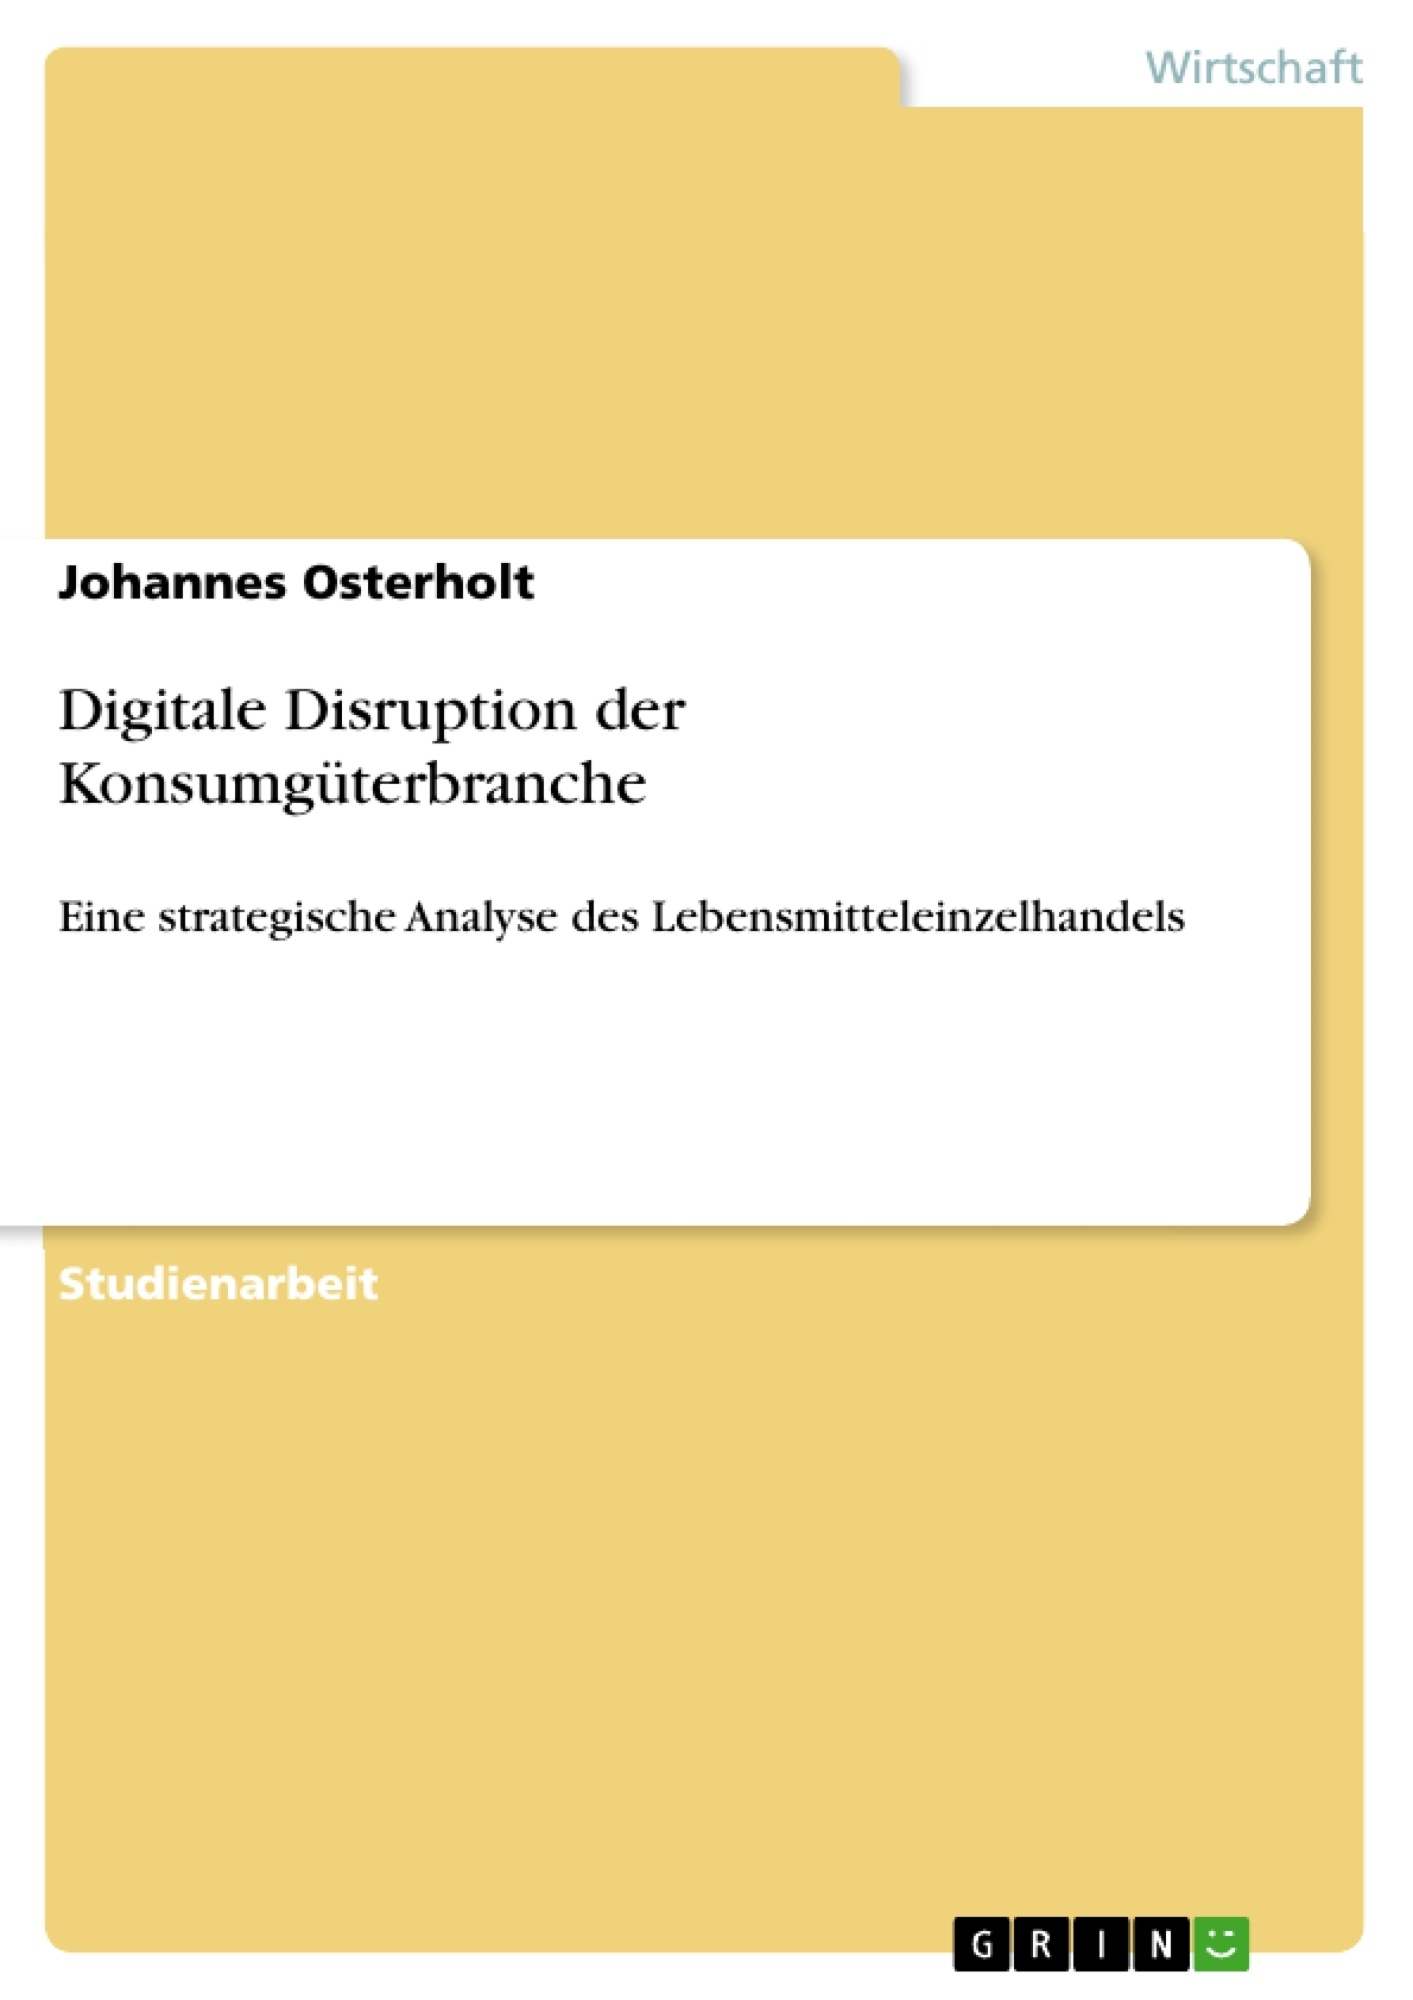 Titel: Digitale Disruption der Konsumgüterbranche